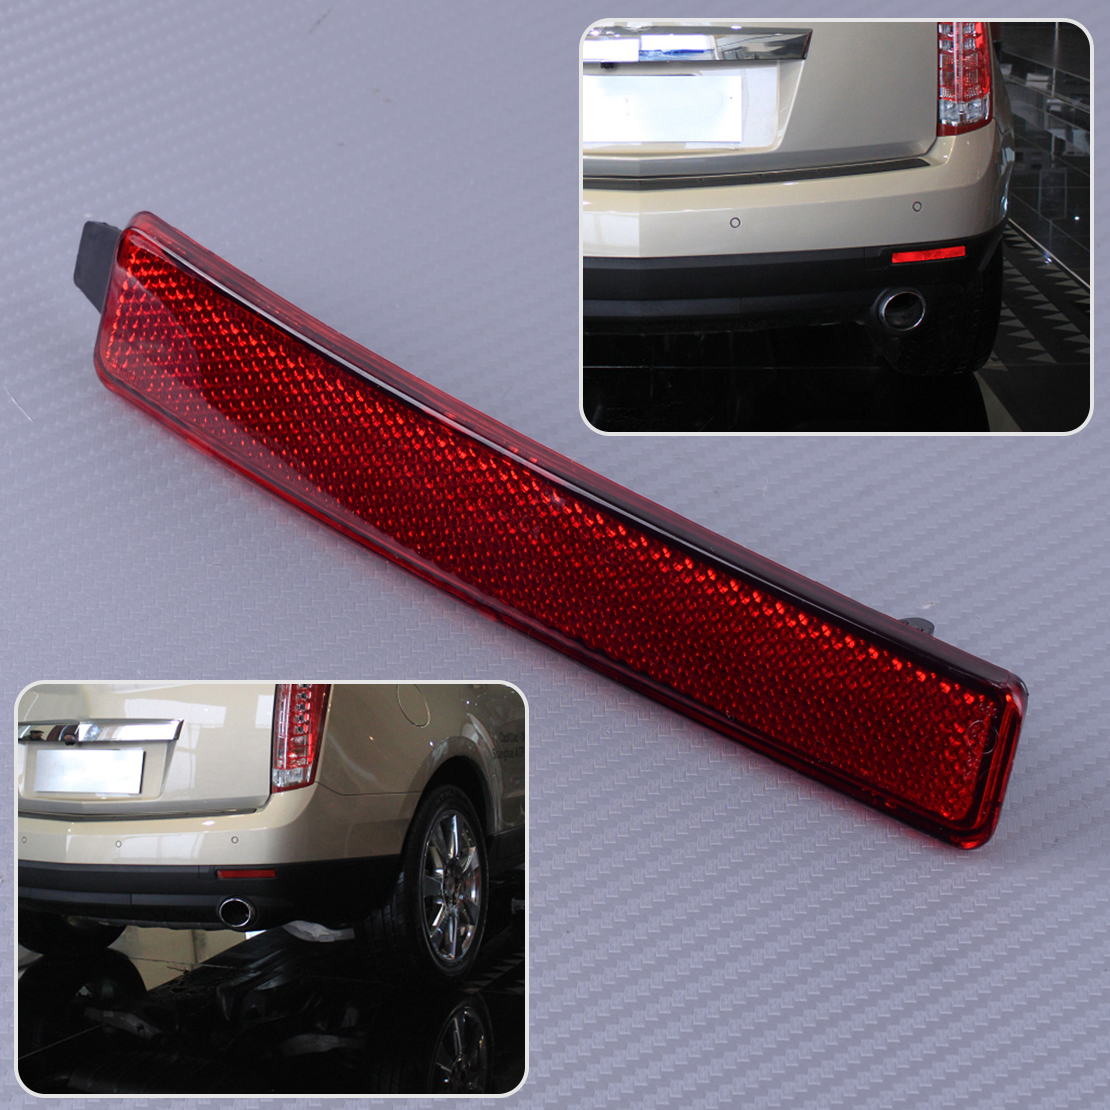 New Rear Passenger Side Bumper Reflector For Cadillac Cadillac SRX 2010-2016